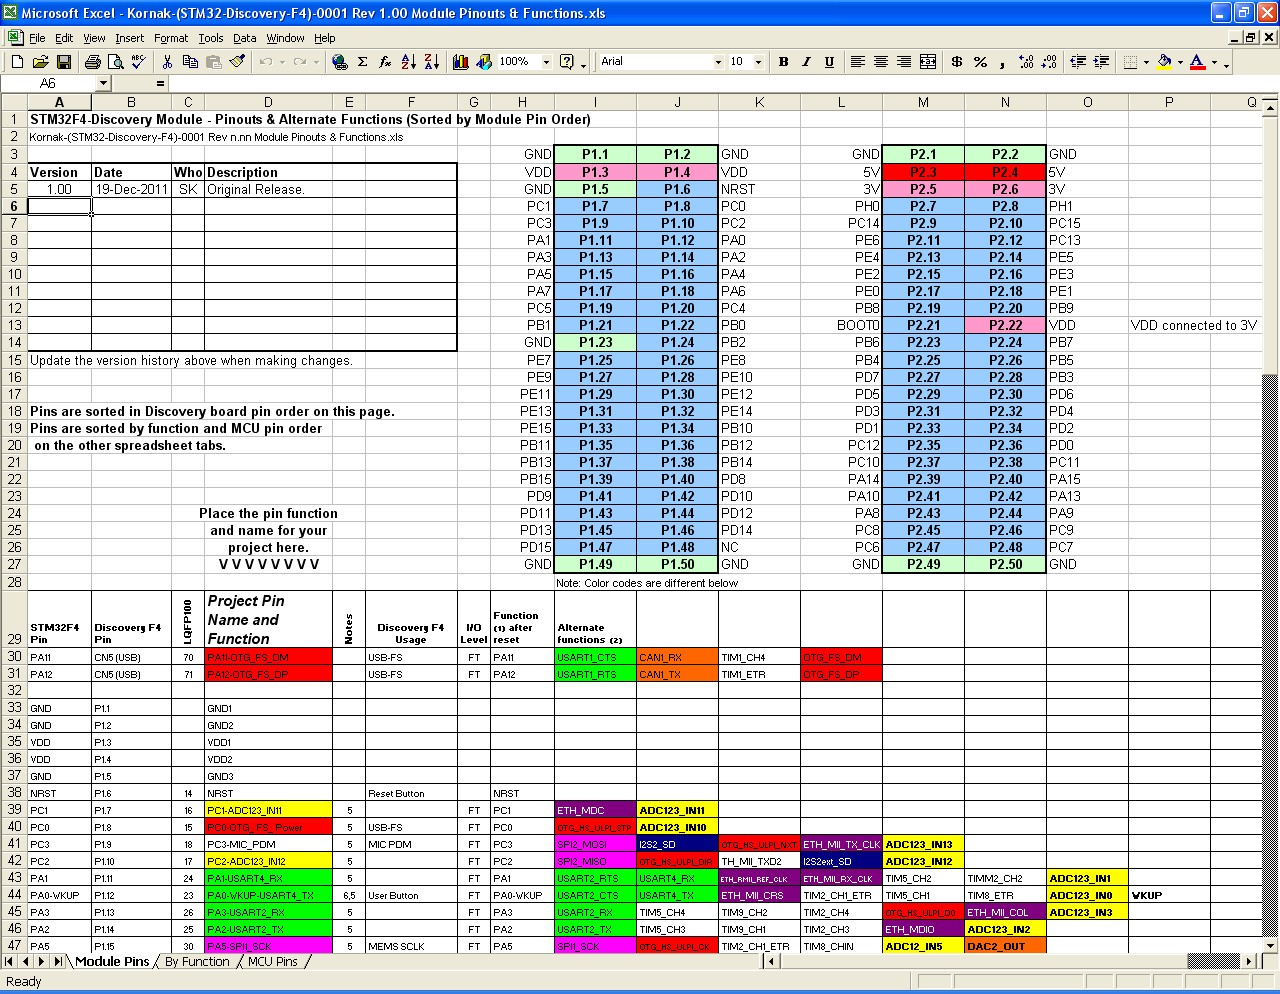 Scot Kornak's ProtoBlog: A Pinout Spreadsheet for the STM32F4-Discovery